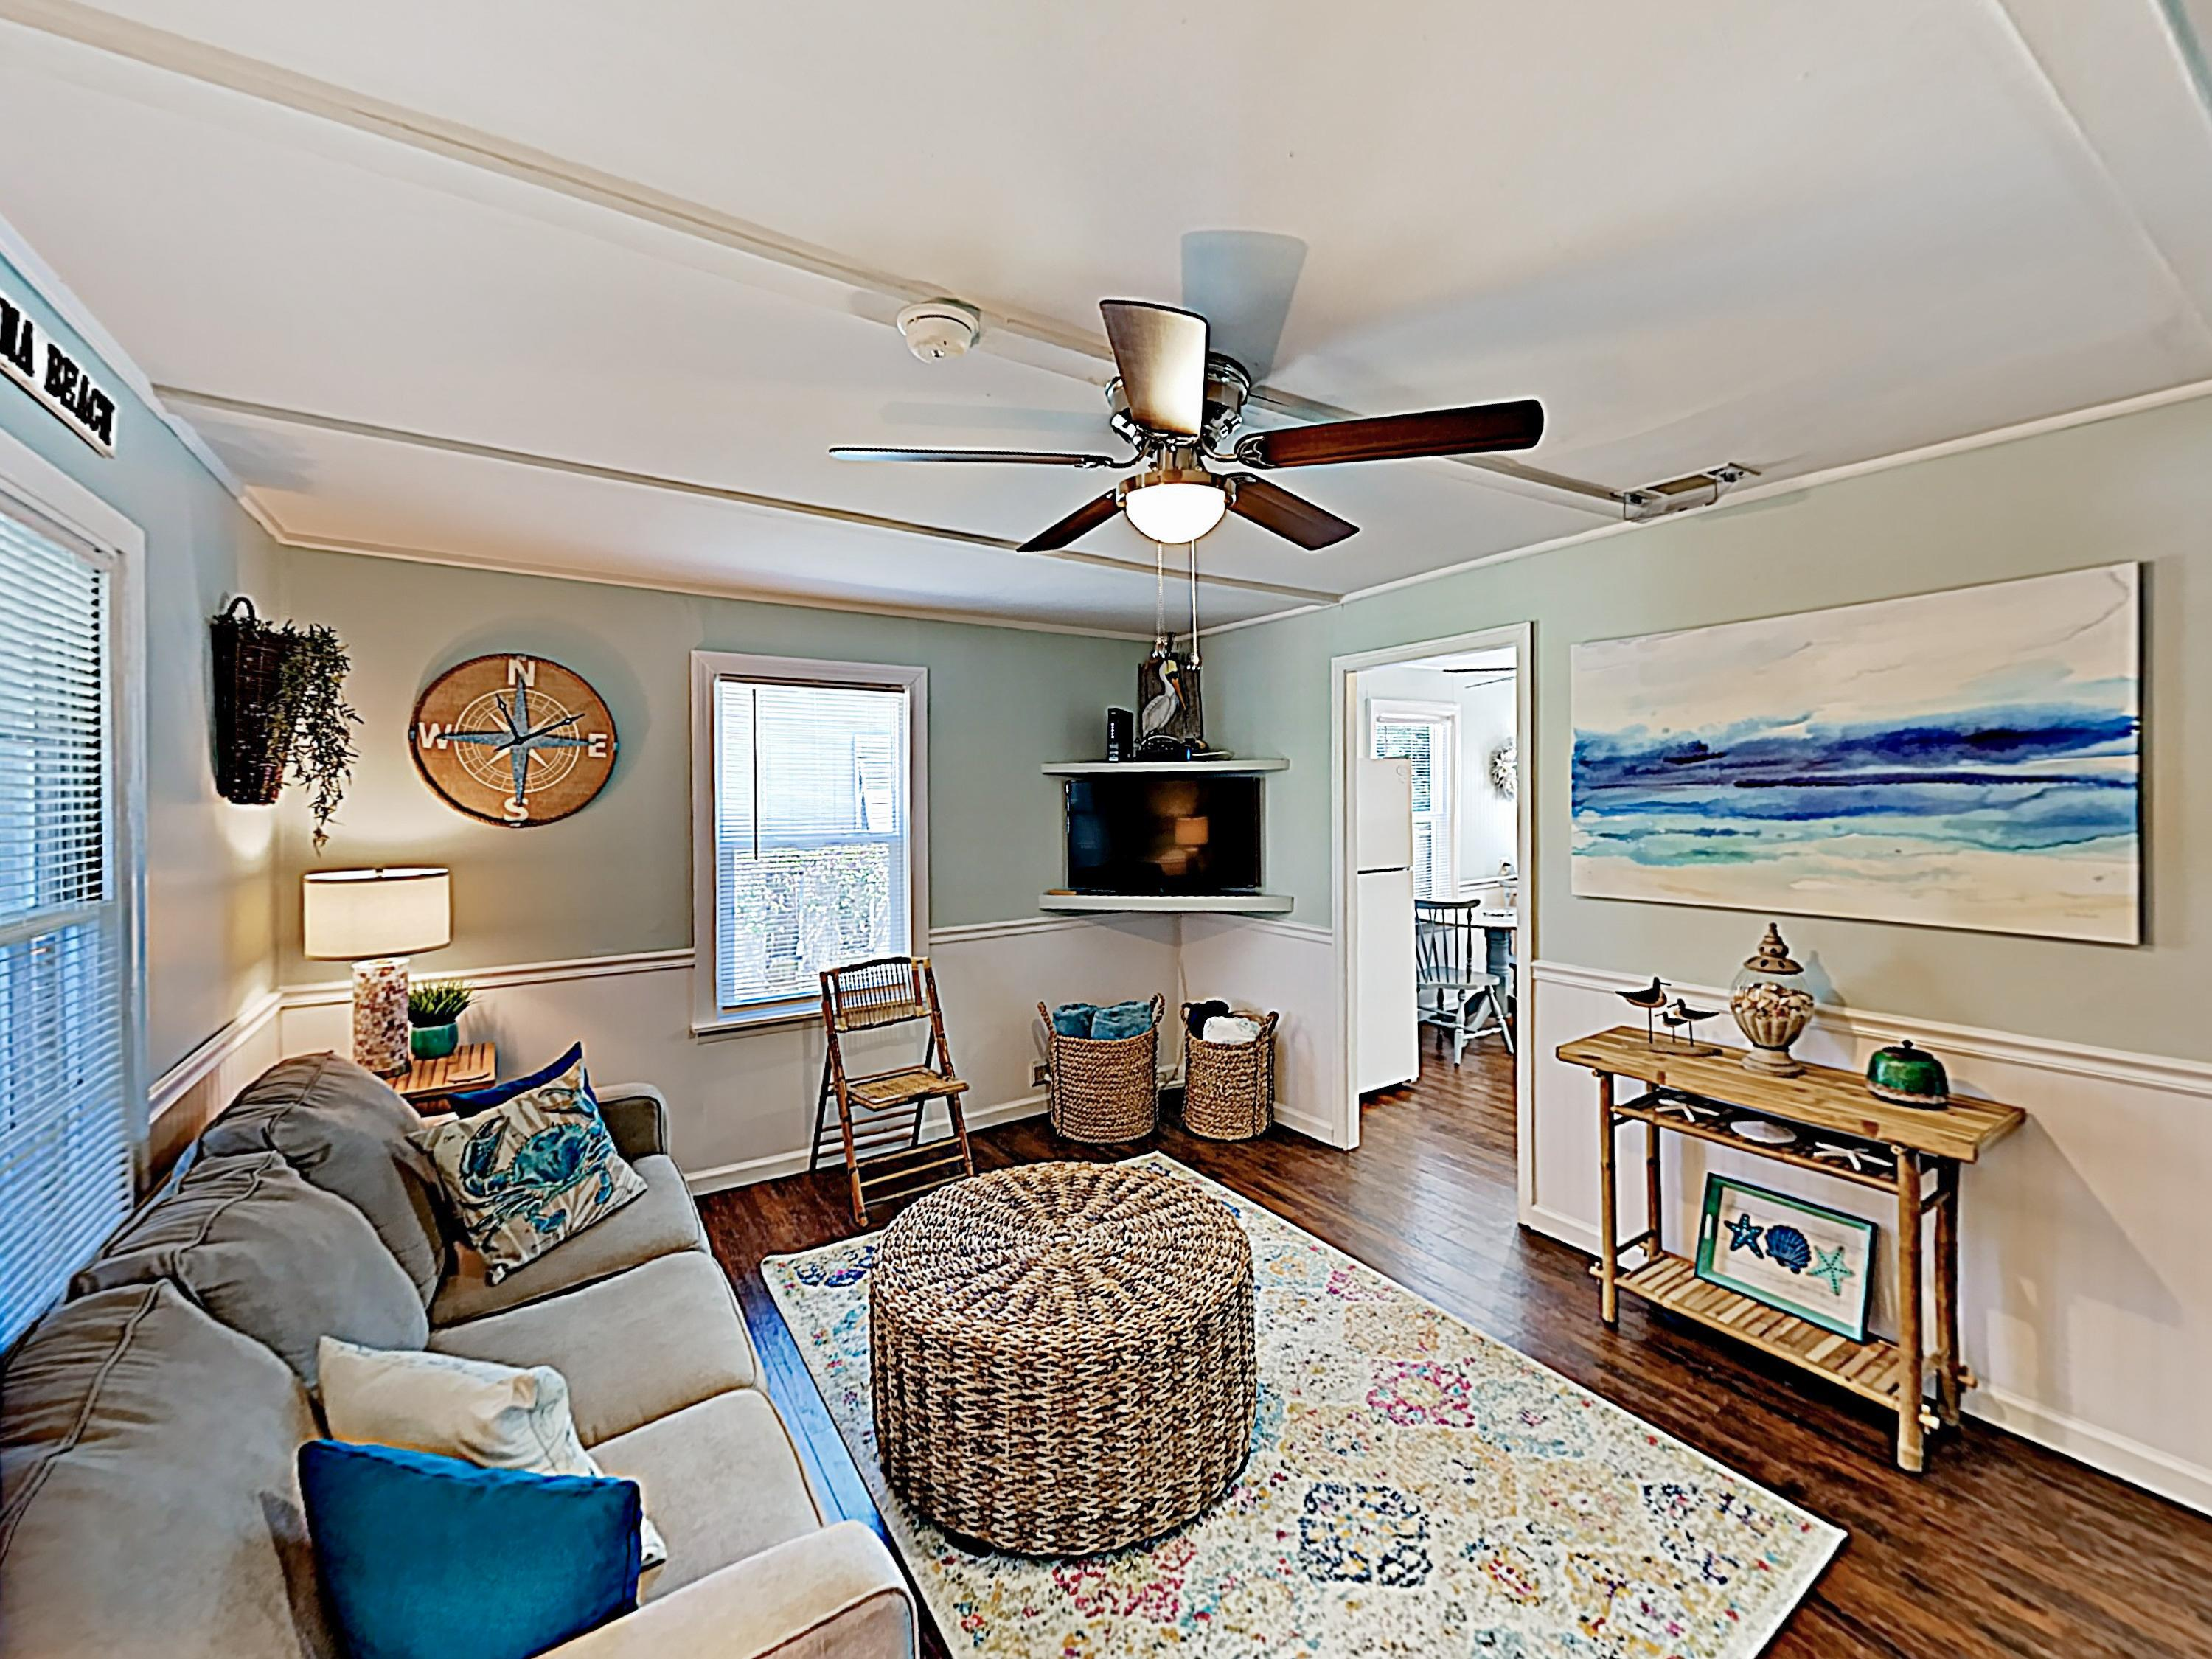 Welcome to Panama City Beach! This home is professionally managed by TurnKey Vacation Rentals.